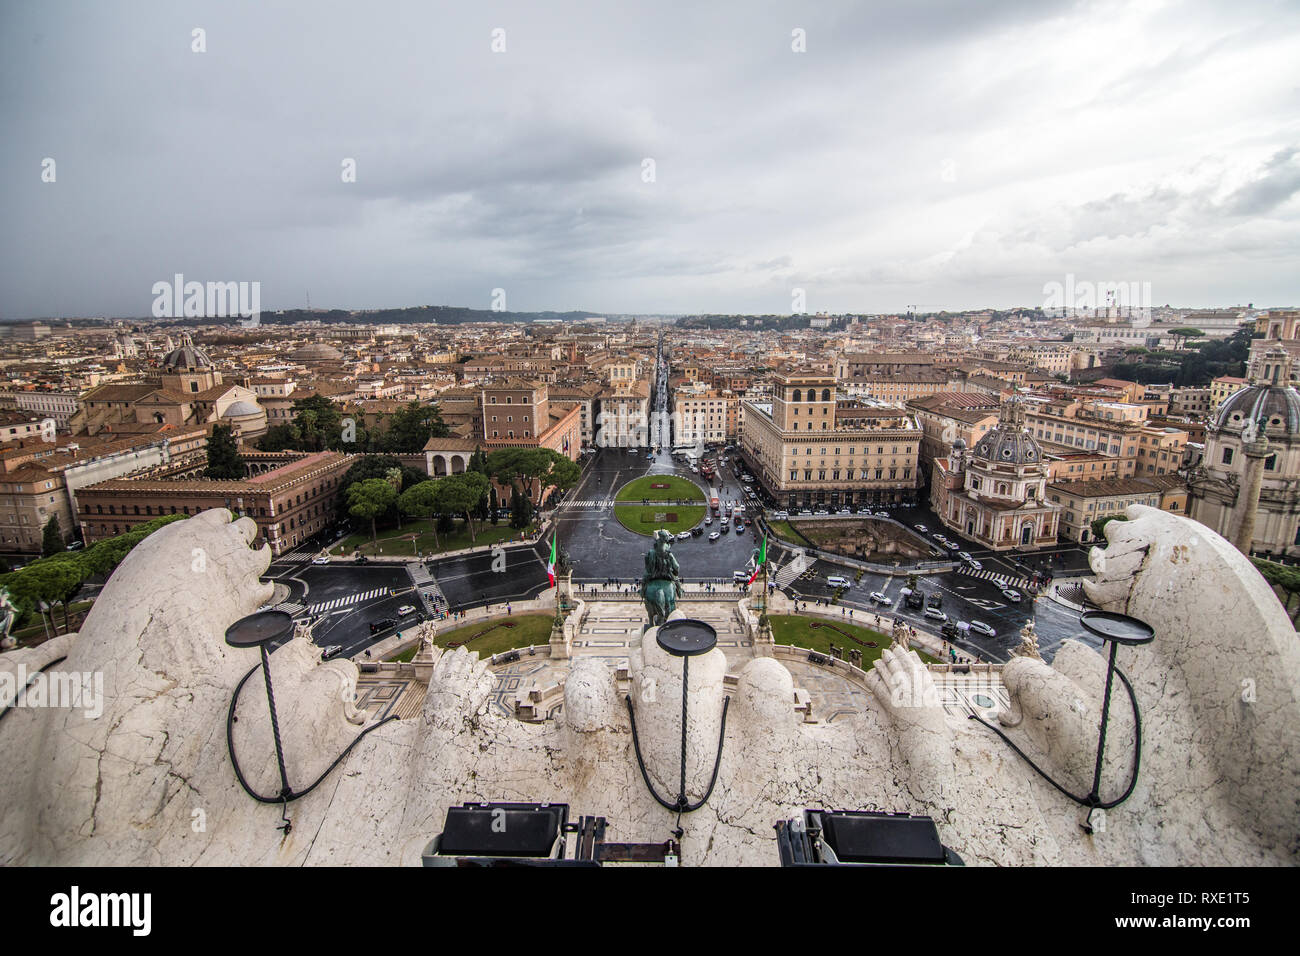 Rome Italy November 2018 View From The Terrazza Delle